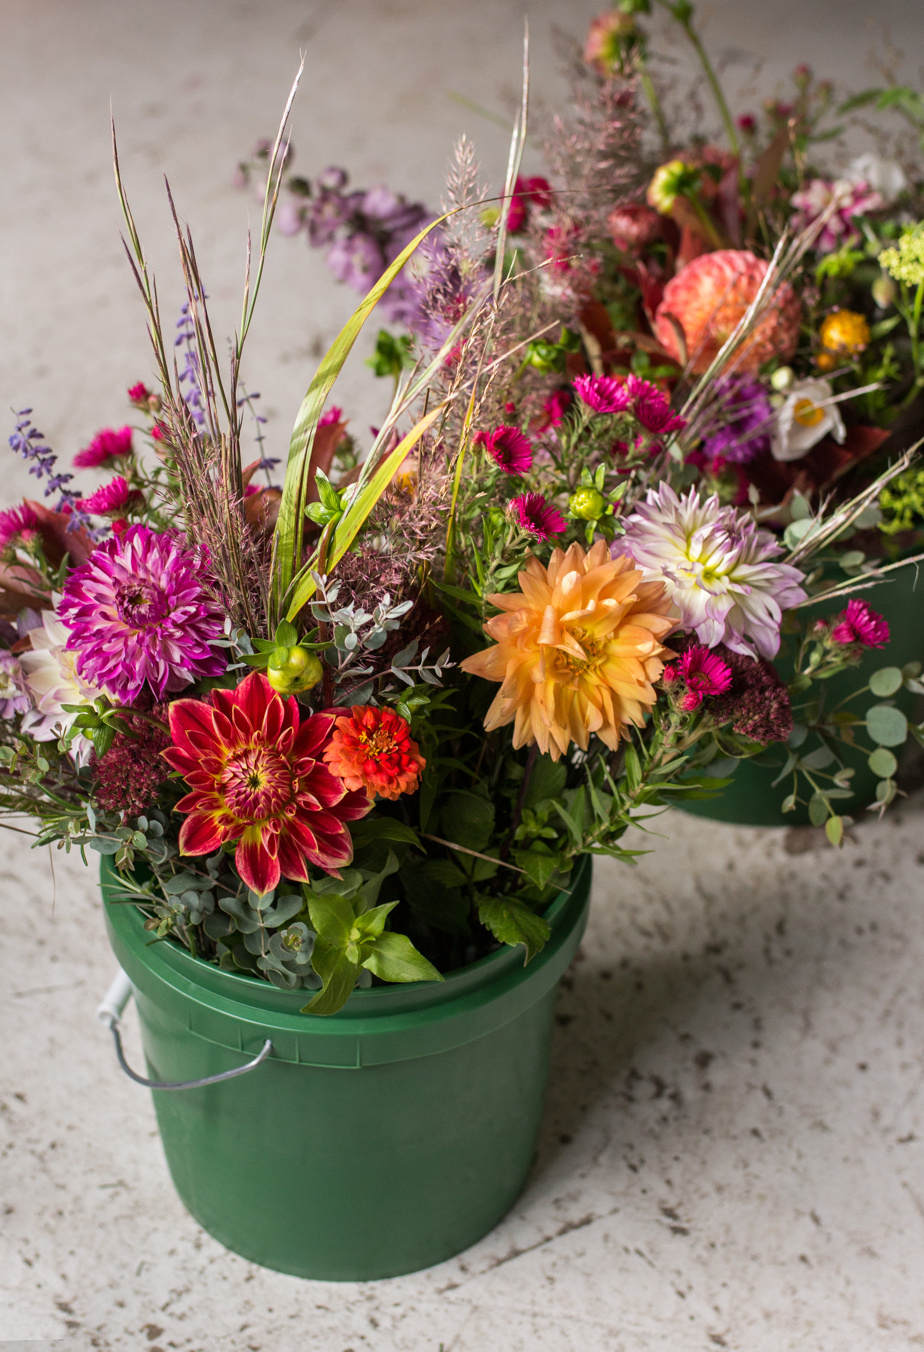 Featured in October: Dahlia, Aster and Grasses